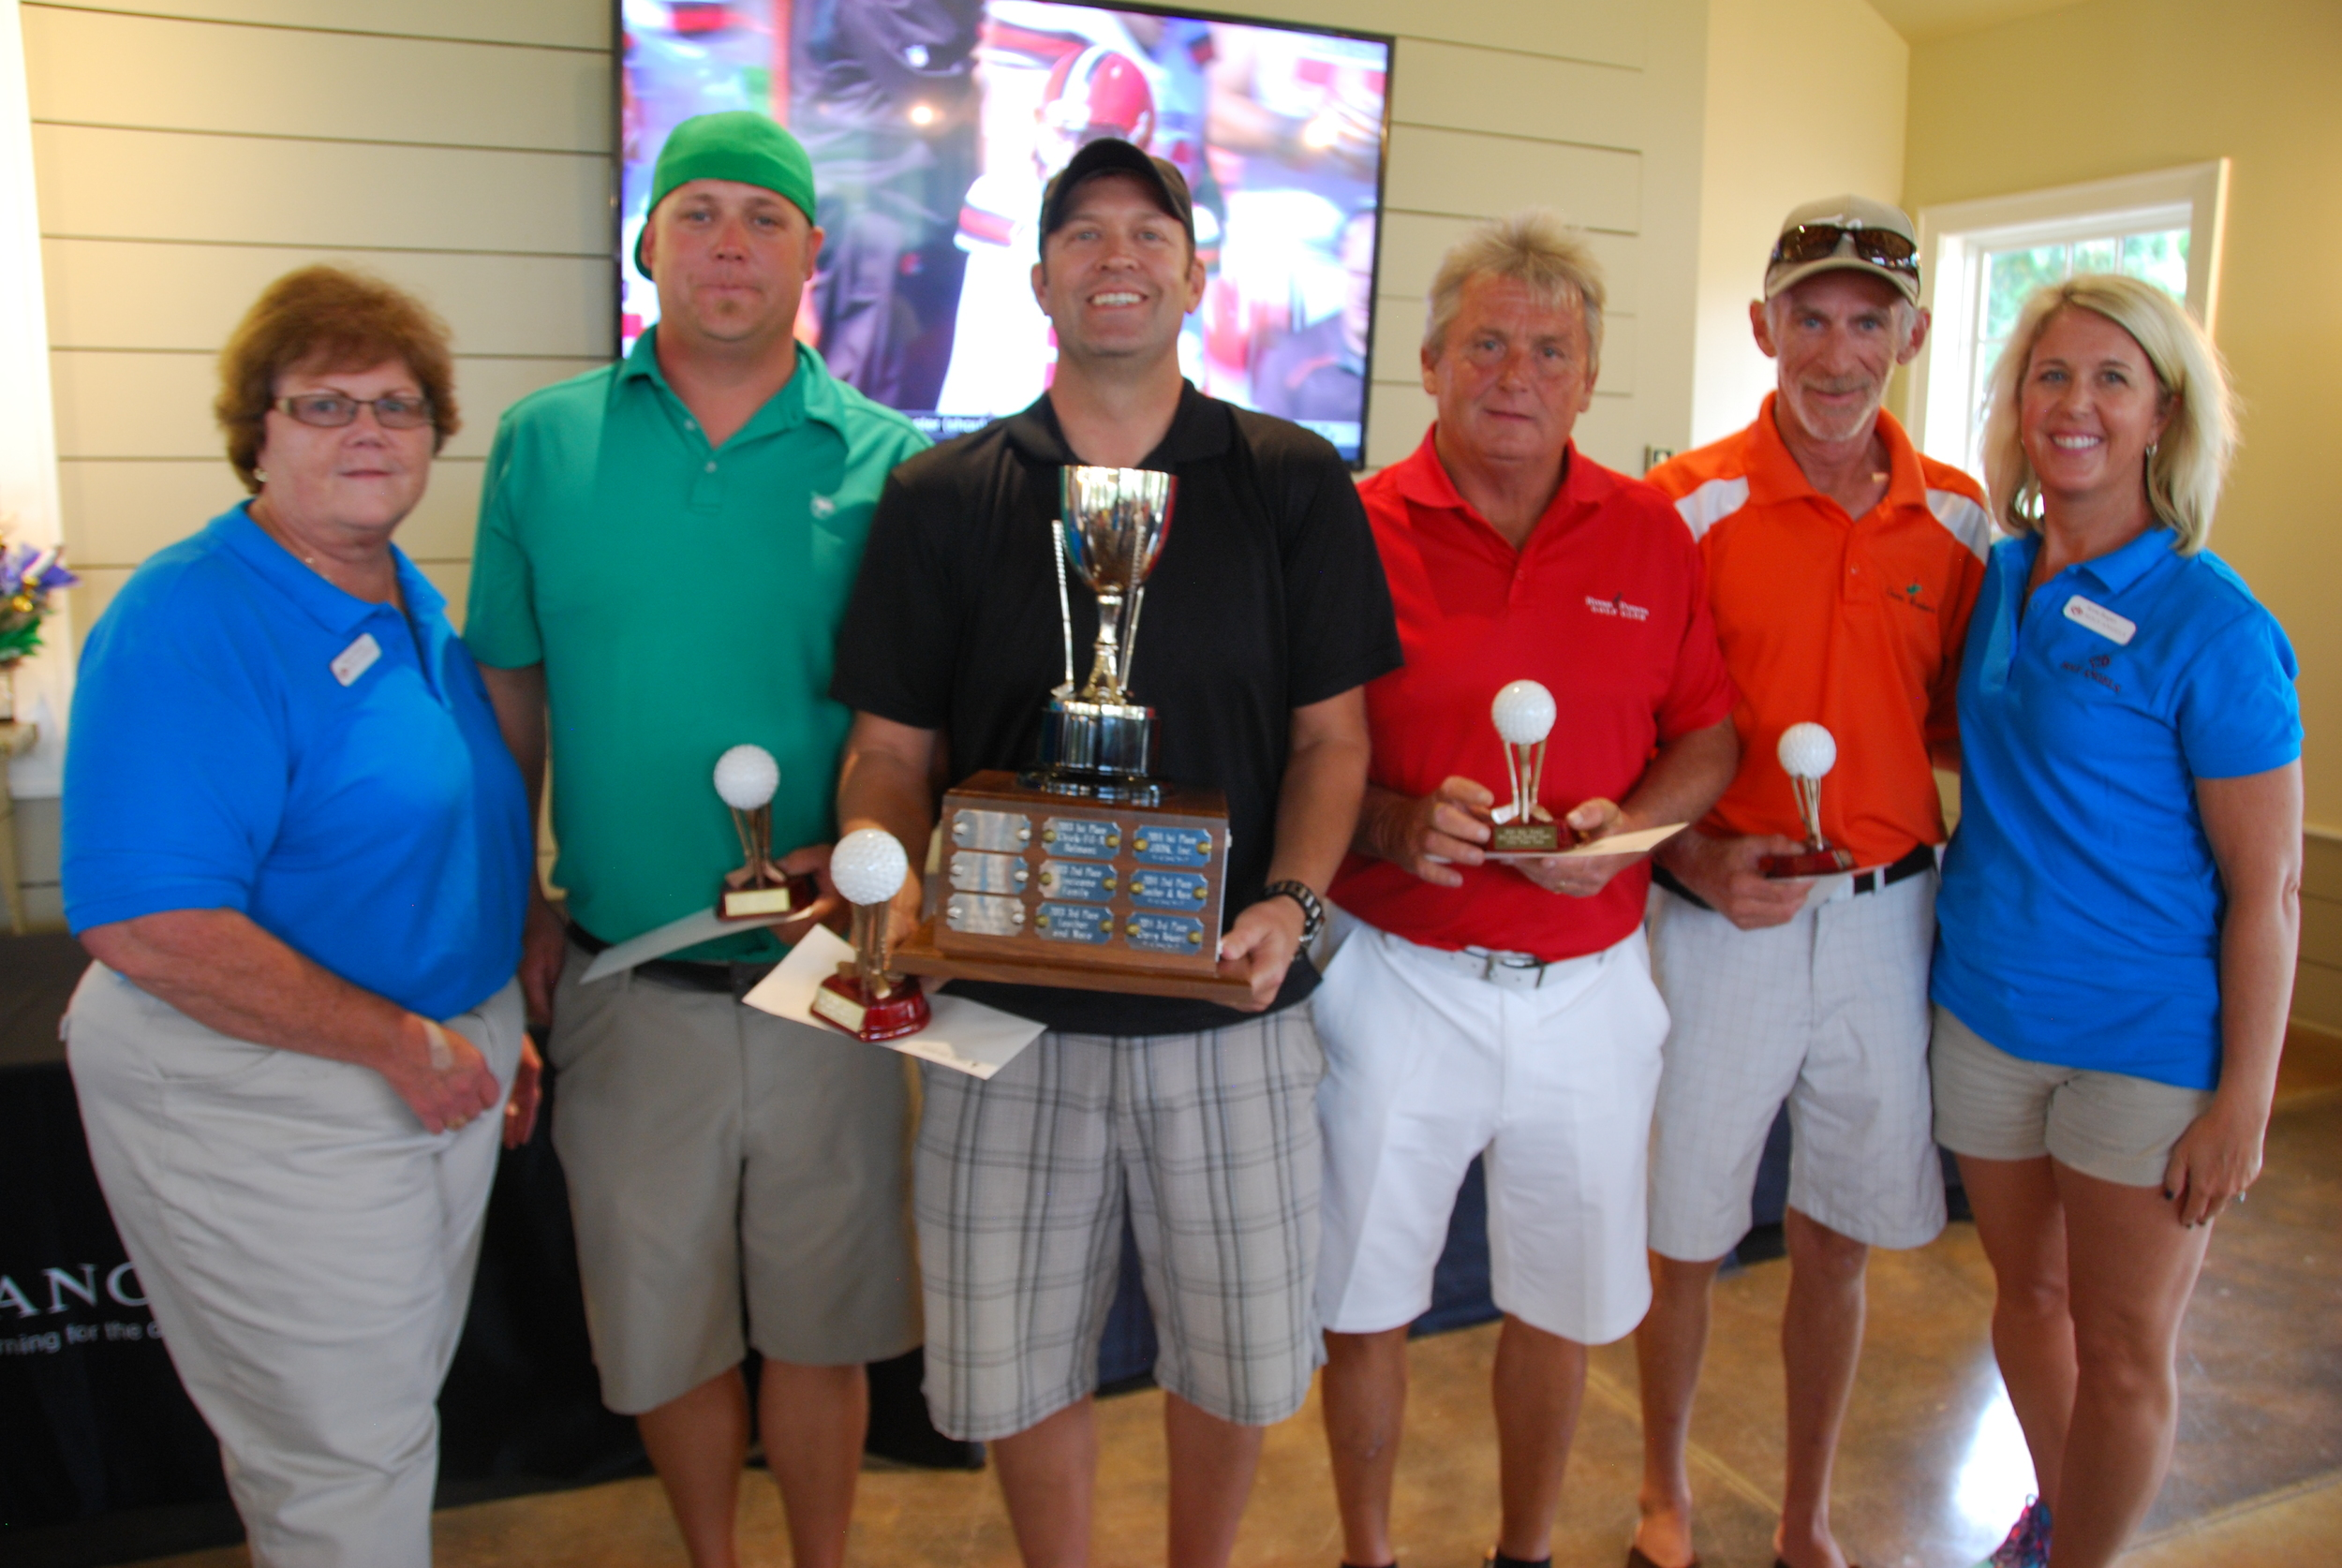 Last year's winning team at our Carolina Classic golf tournament!